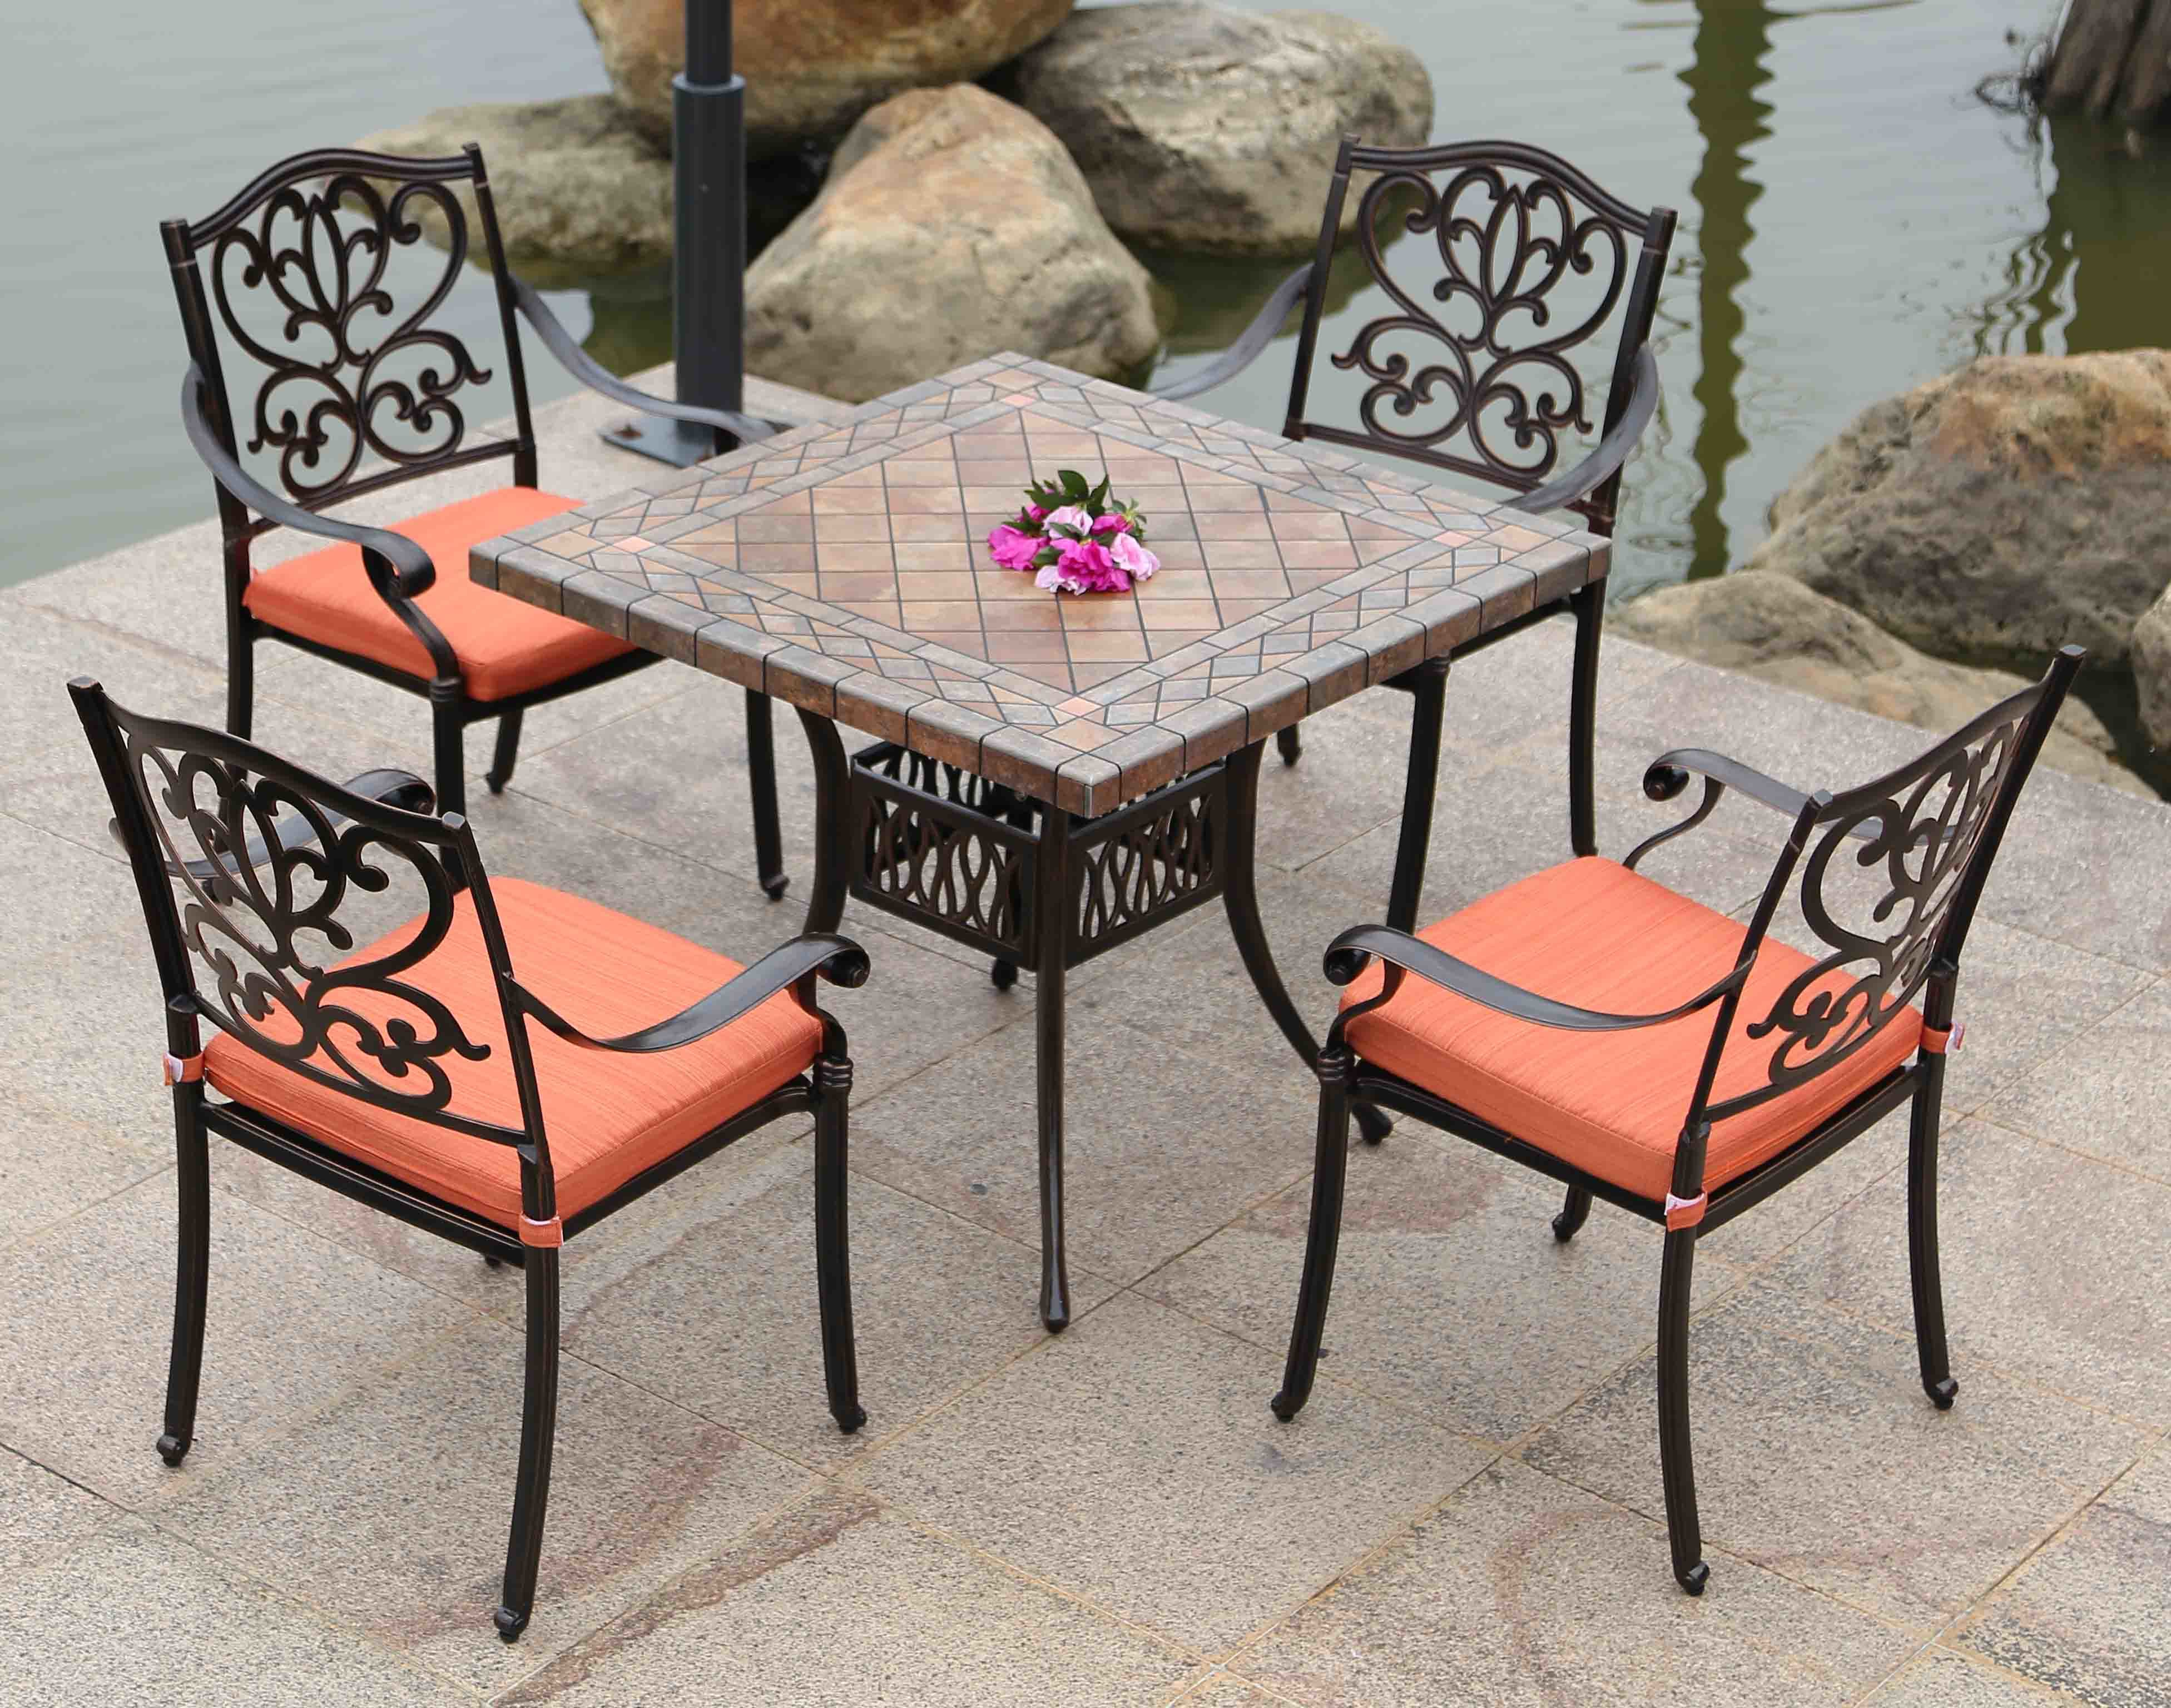 dongguan toyard furniture company was set up in 2012 year which mainly produces and exports high quality patio powder coated aluminum frame with